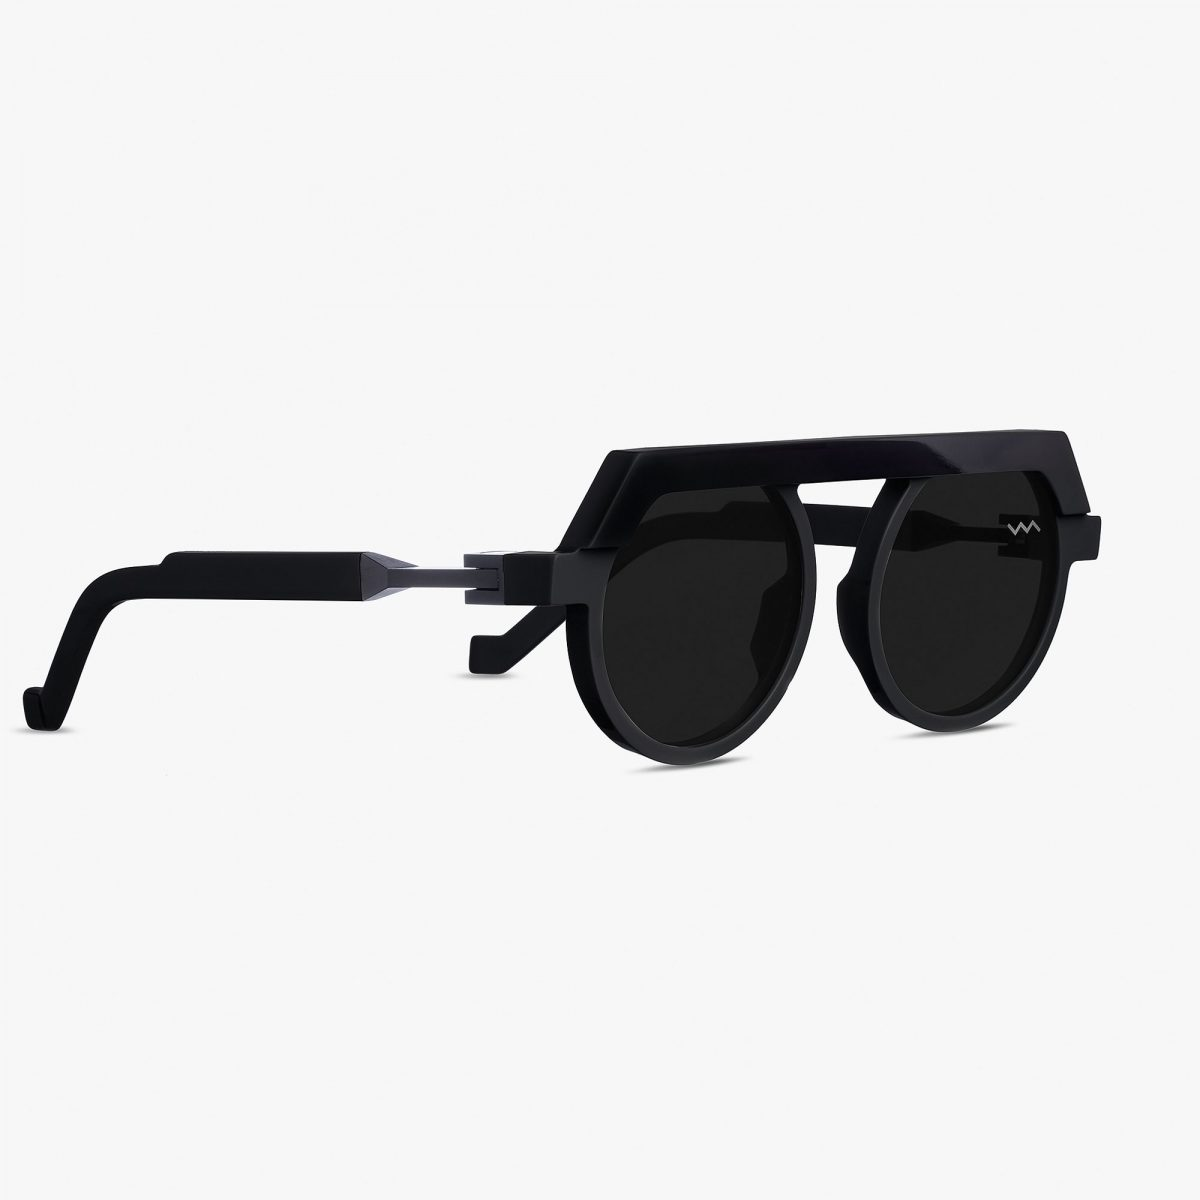 VAVA EYEWEAR ONLINE SHOP BL0021 BLACK SIDE SUNGLASS